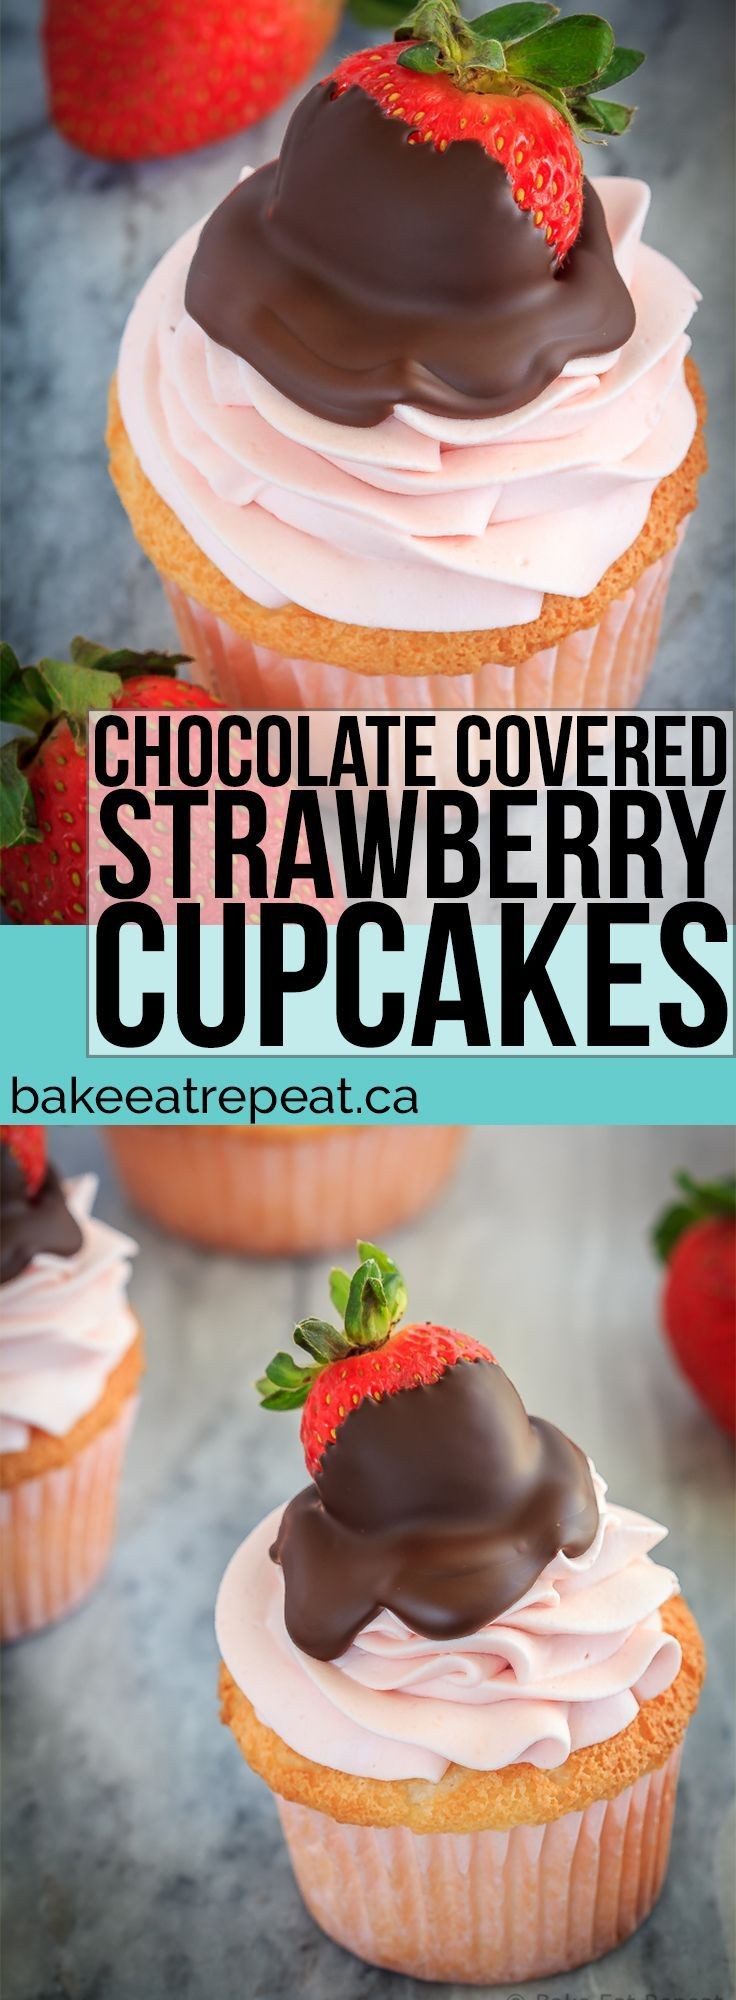 These chocolate covered strawberry cupcakes are the perfect sweet treat for Valentine's Day - angel food cupcakes with strawberry whipped cream frosting! | Posted By: DebbieNet.com